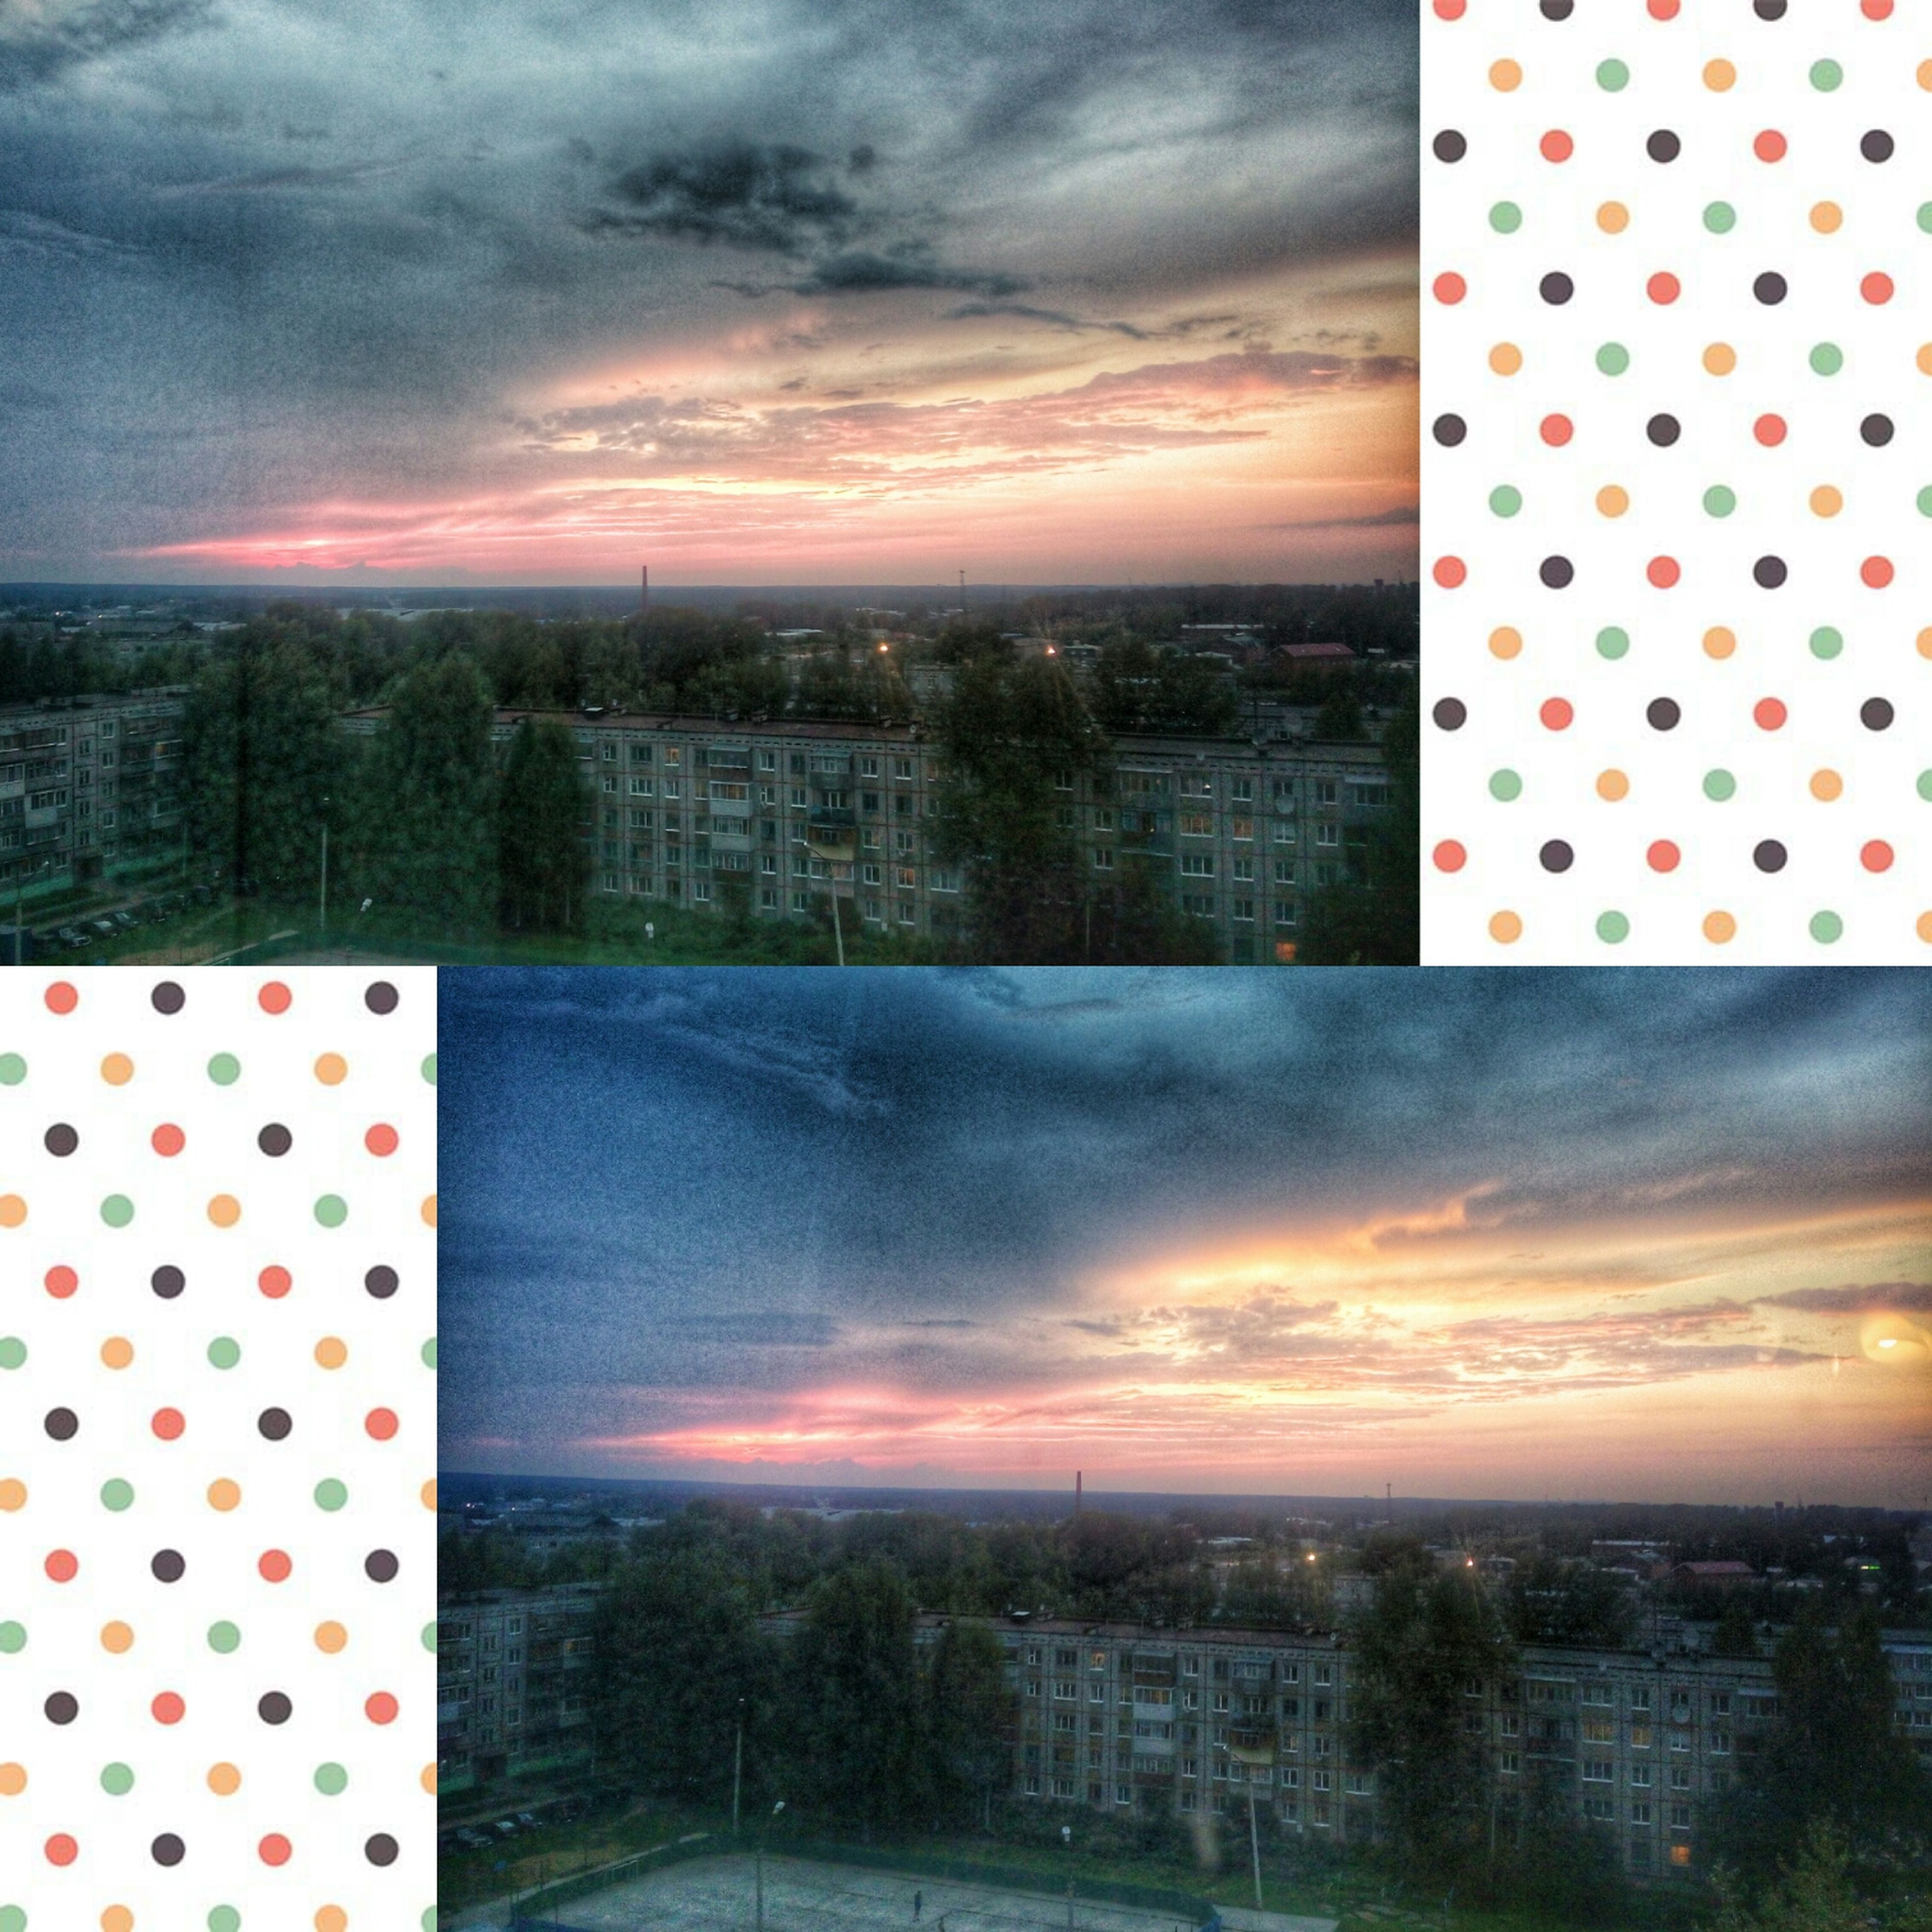 cloud, transportation, sky, striped, outdoors, collage, cloud - sky, multi colored, moody sky, blue, red, high section, skyline, office block, montage, storm cloud, romantic sky, colorful